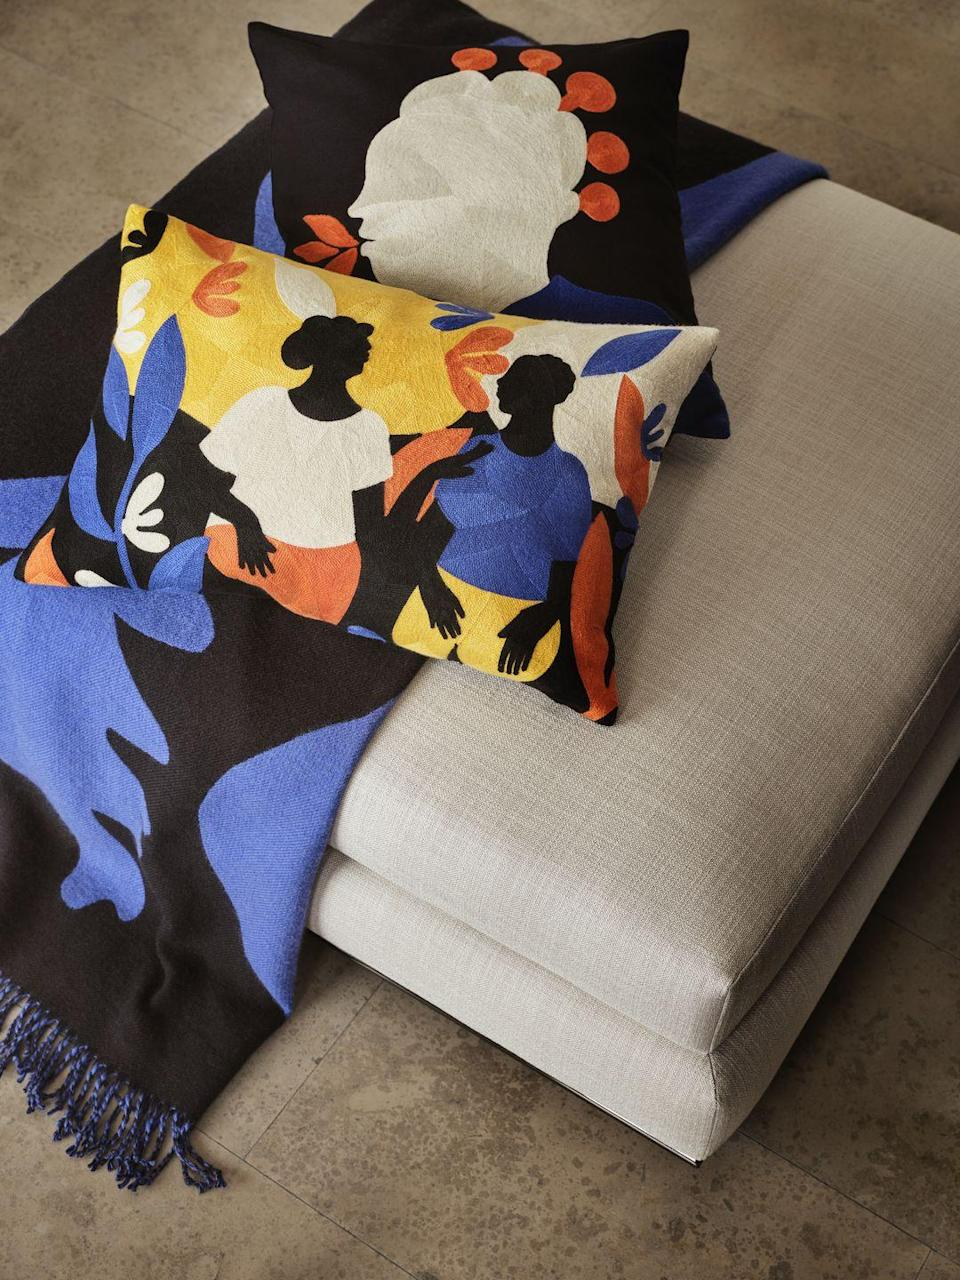 """<p>Accentuate your decor with Italian-Nigerian Diana Ejaita's colourful cushions. Featuring images that portray the strength of femininity, each cushion cover has an embroidered motif on the front depicting a close conversation. They're right at the top of our wish list...</p><p><a class=""""link rapid-noclick-resp"""" href=""""https://www2.hm.com/en_gb/productpage.1009279001.html"""" rel=""""nofollow noopener"""" target=""""_blank"""" data-ylk=""""slk:BUY NOW"""">BUY NOW</a></p>"""